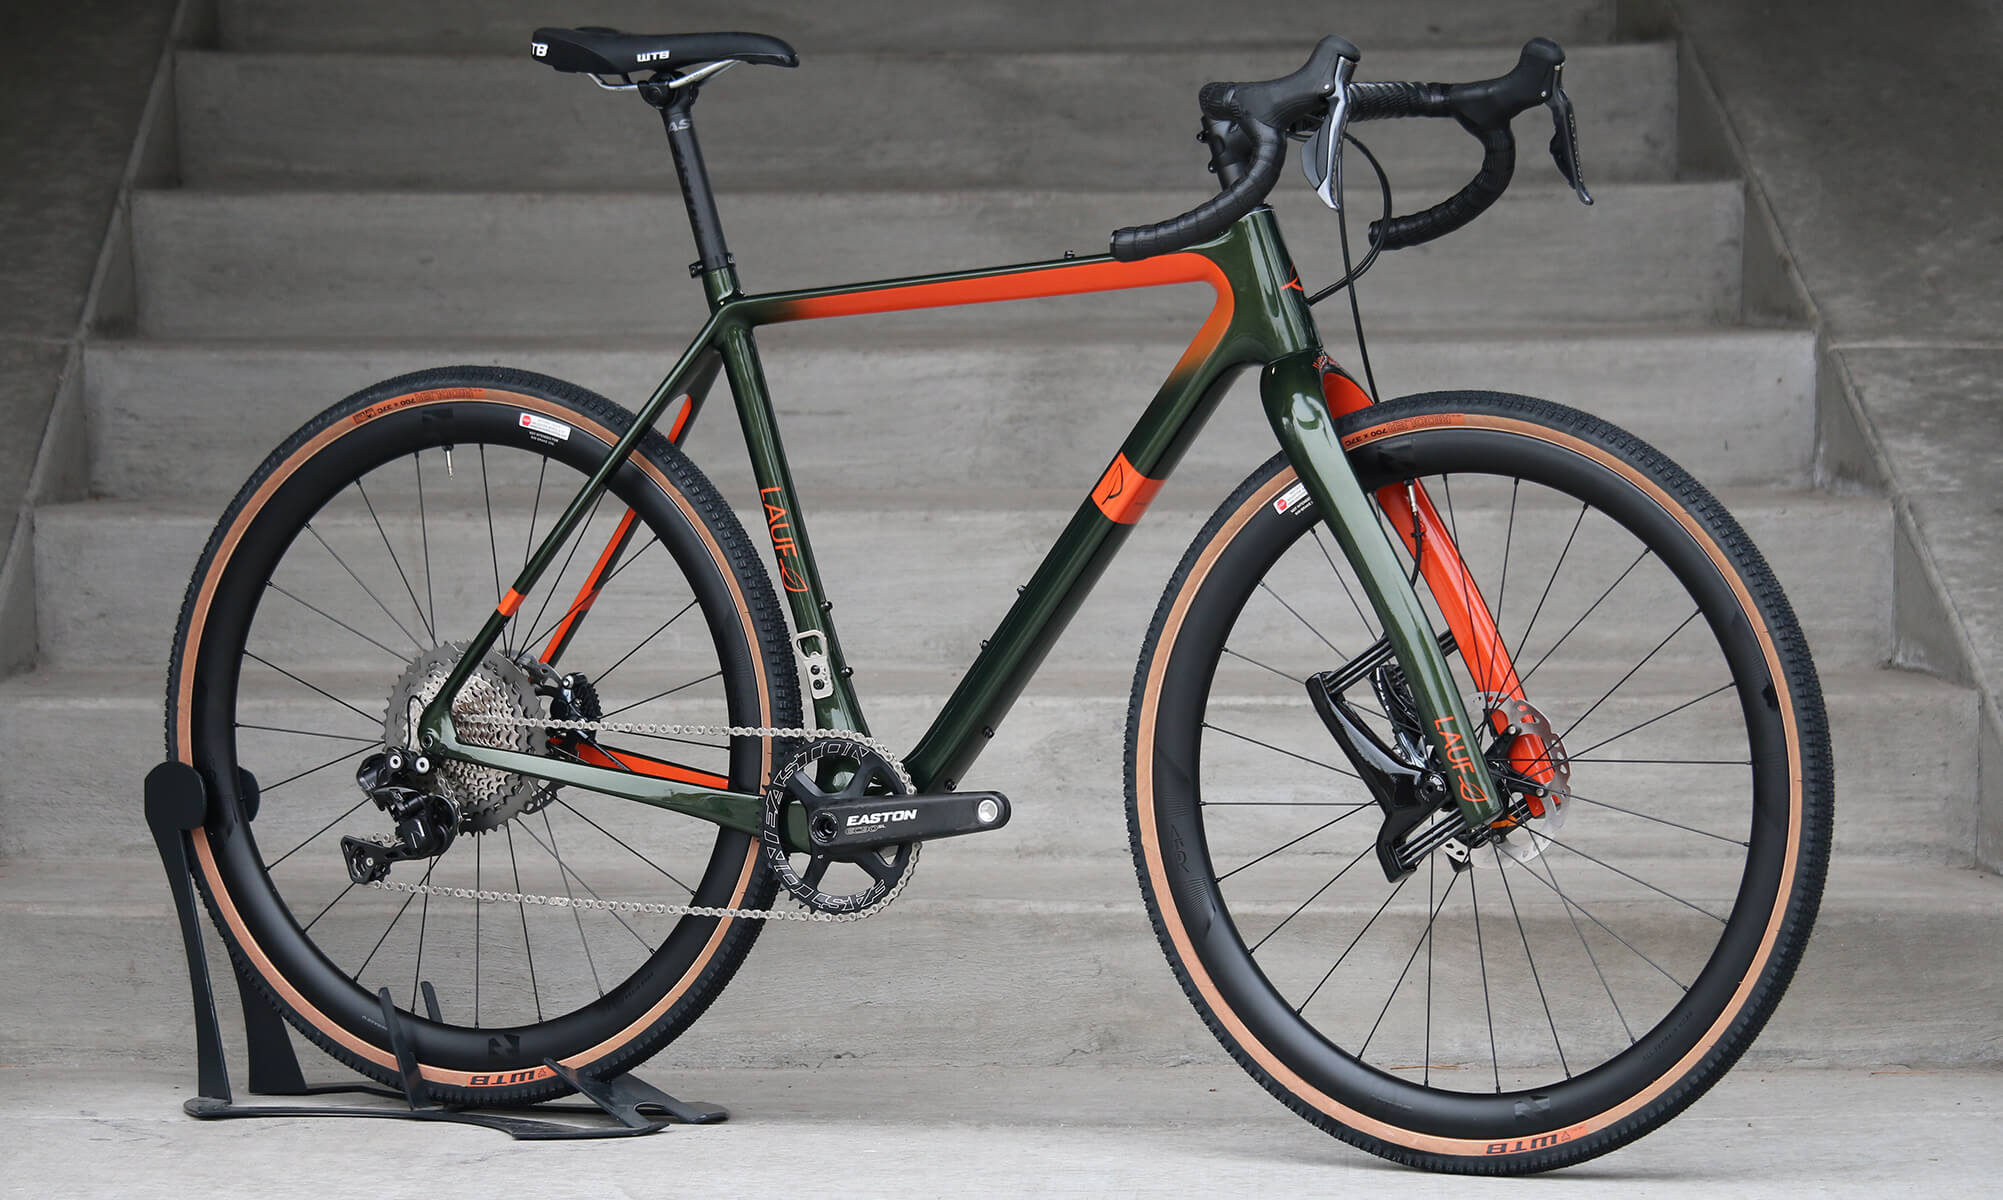 Lauf True Grit Gravel Bike - Suspension Fork - Ready to Paint - Contender Bicycles